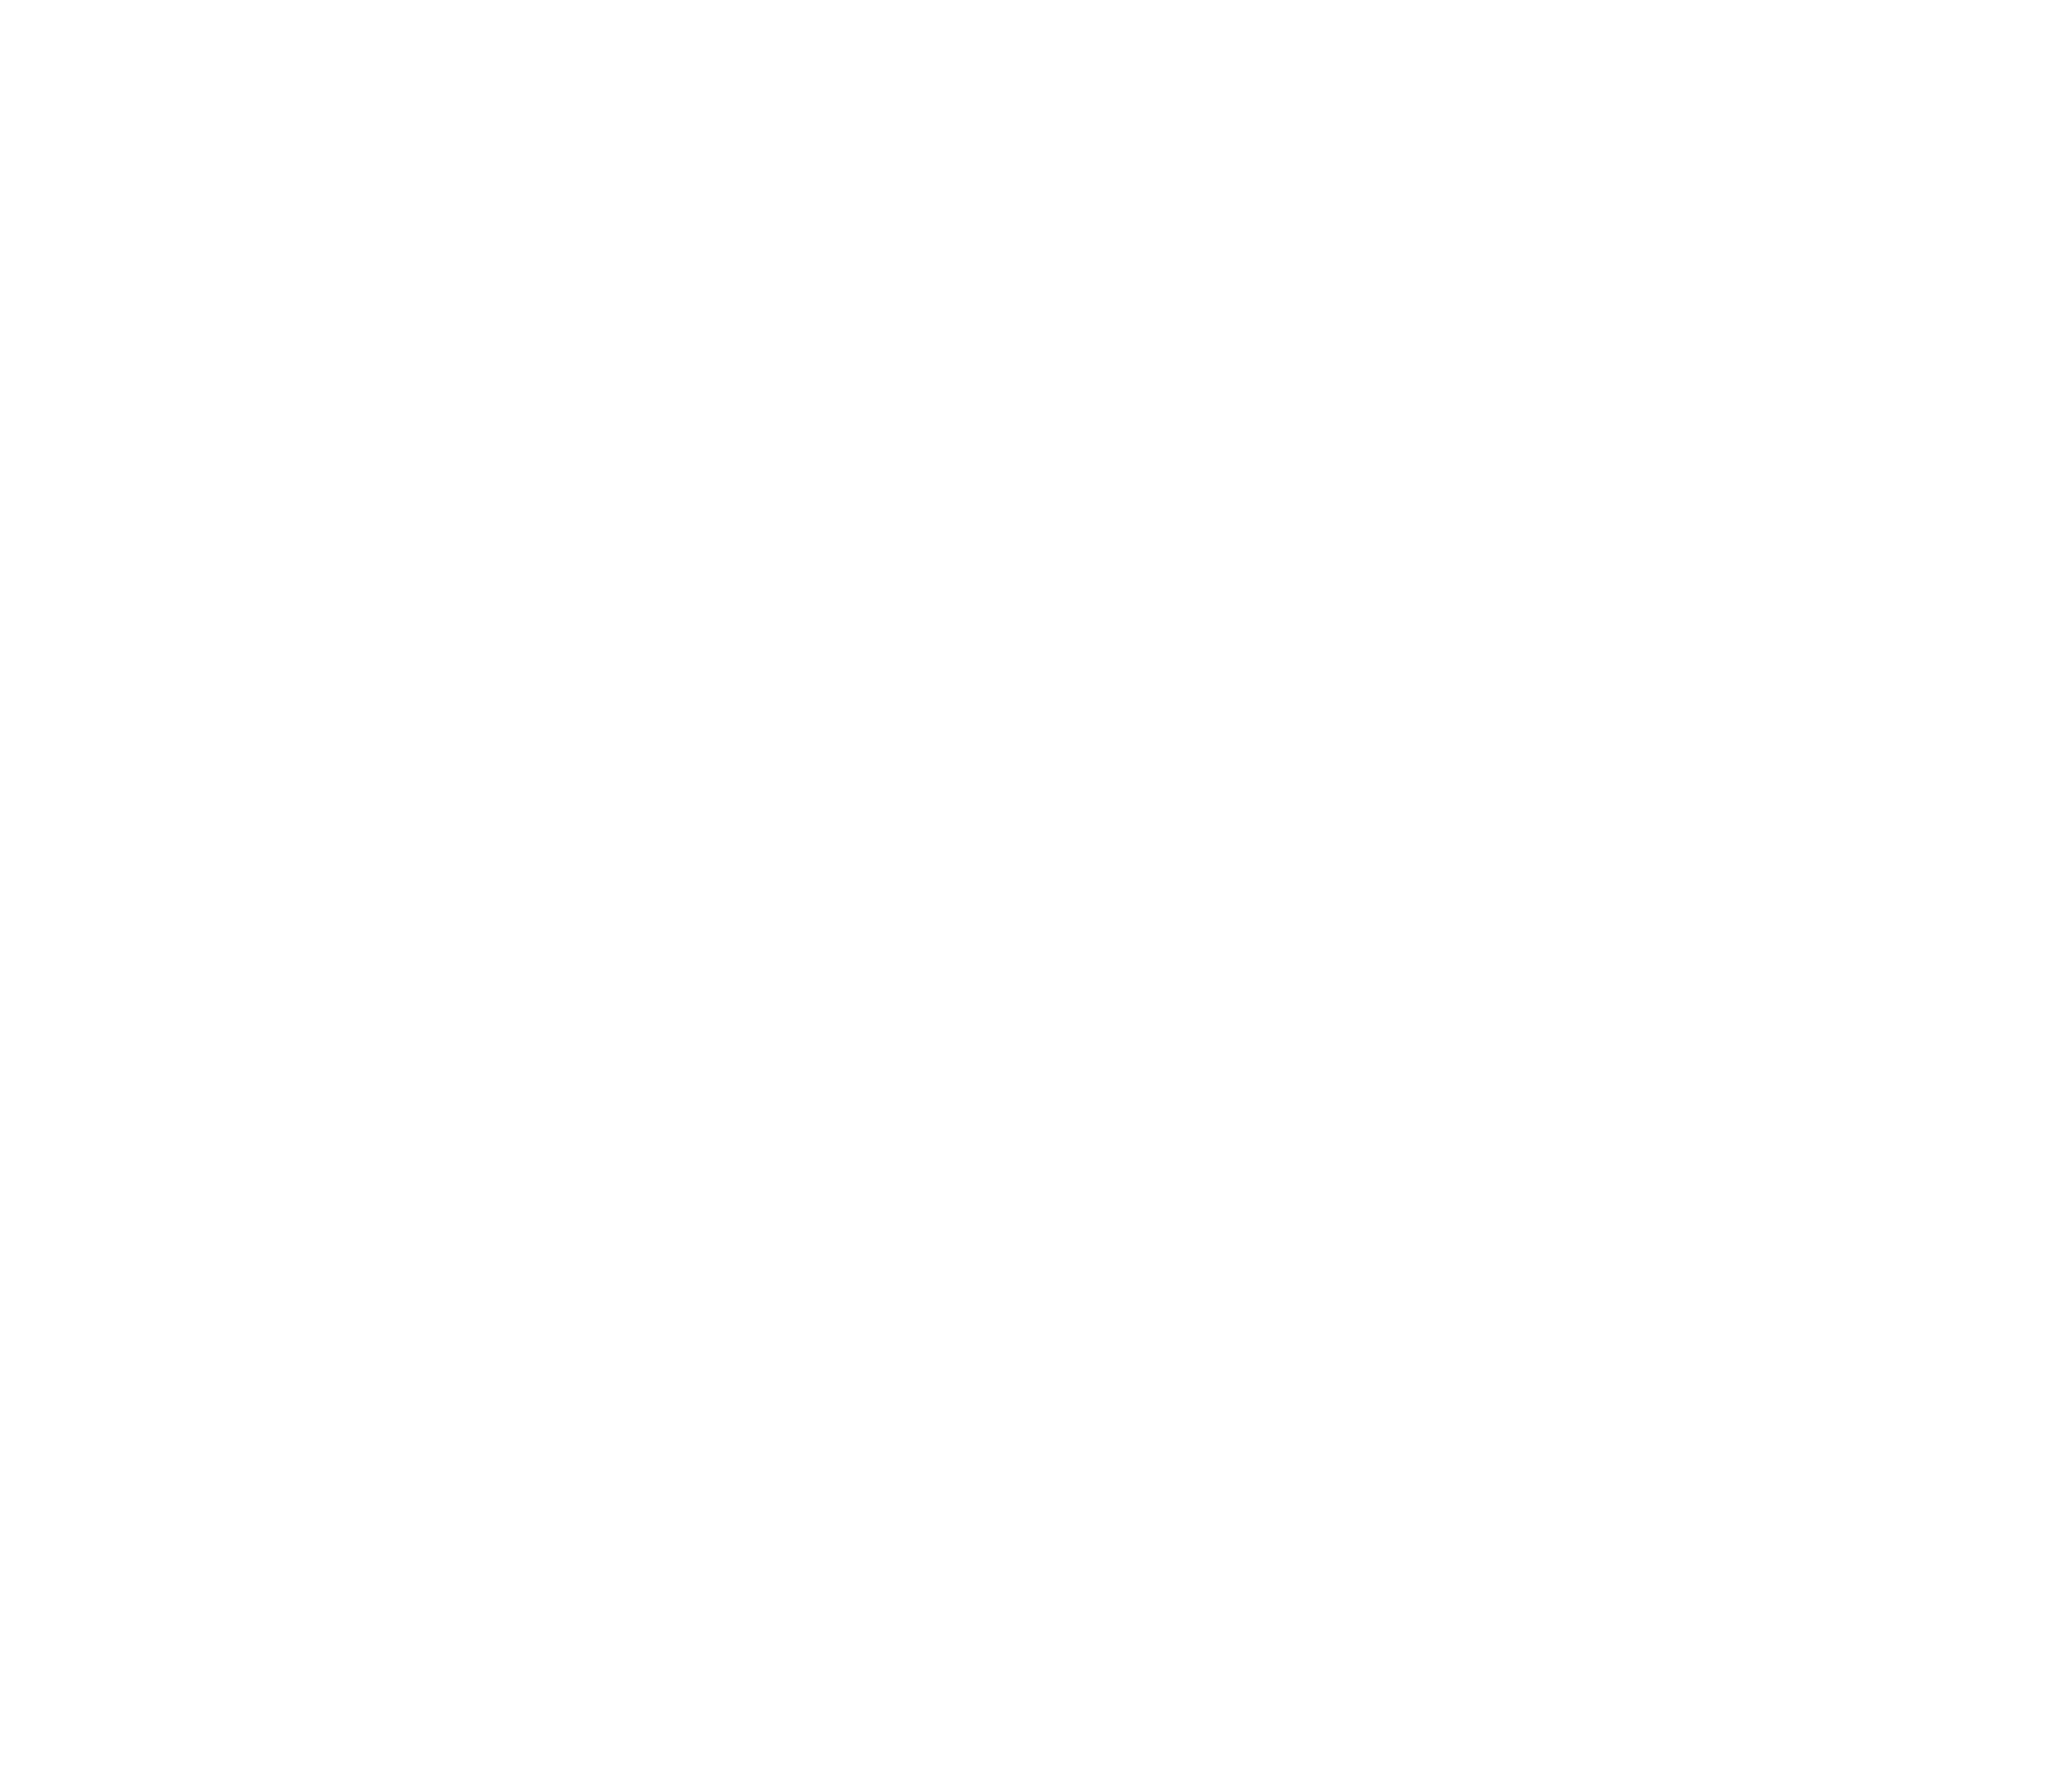 IndiaFooty.com